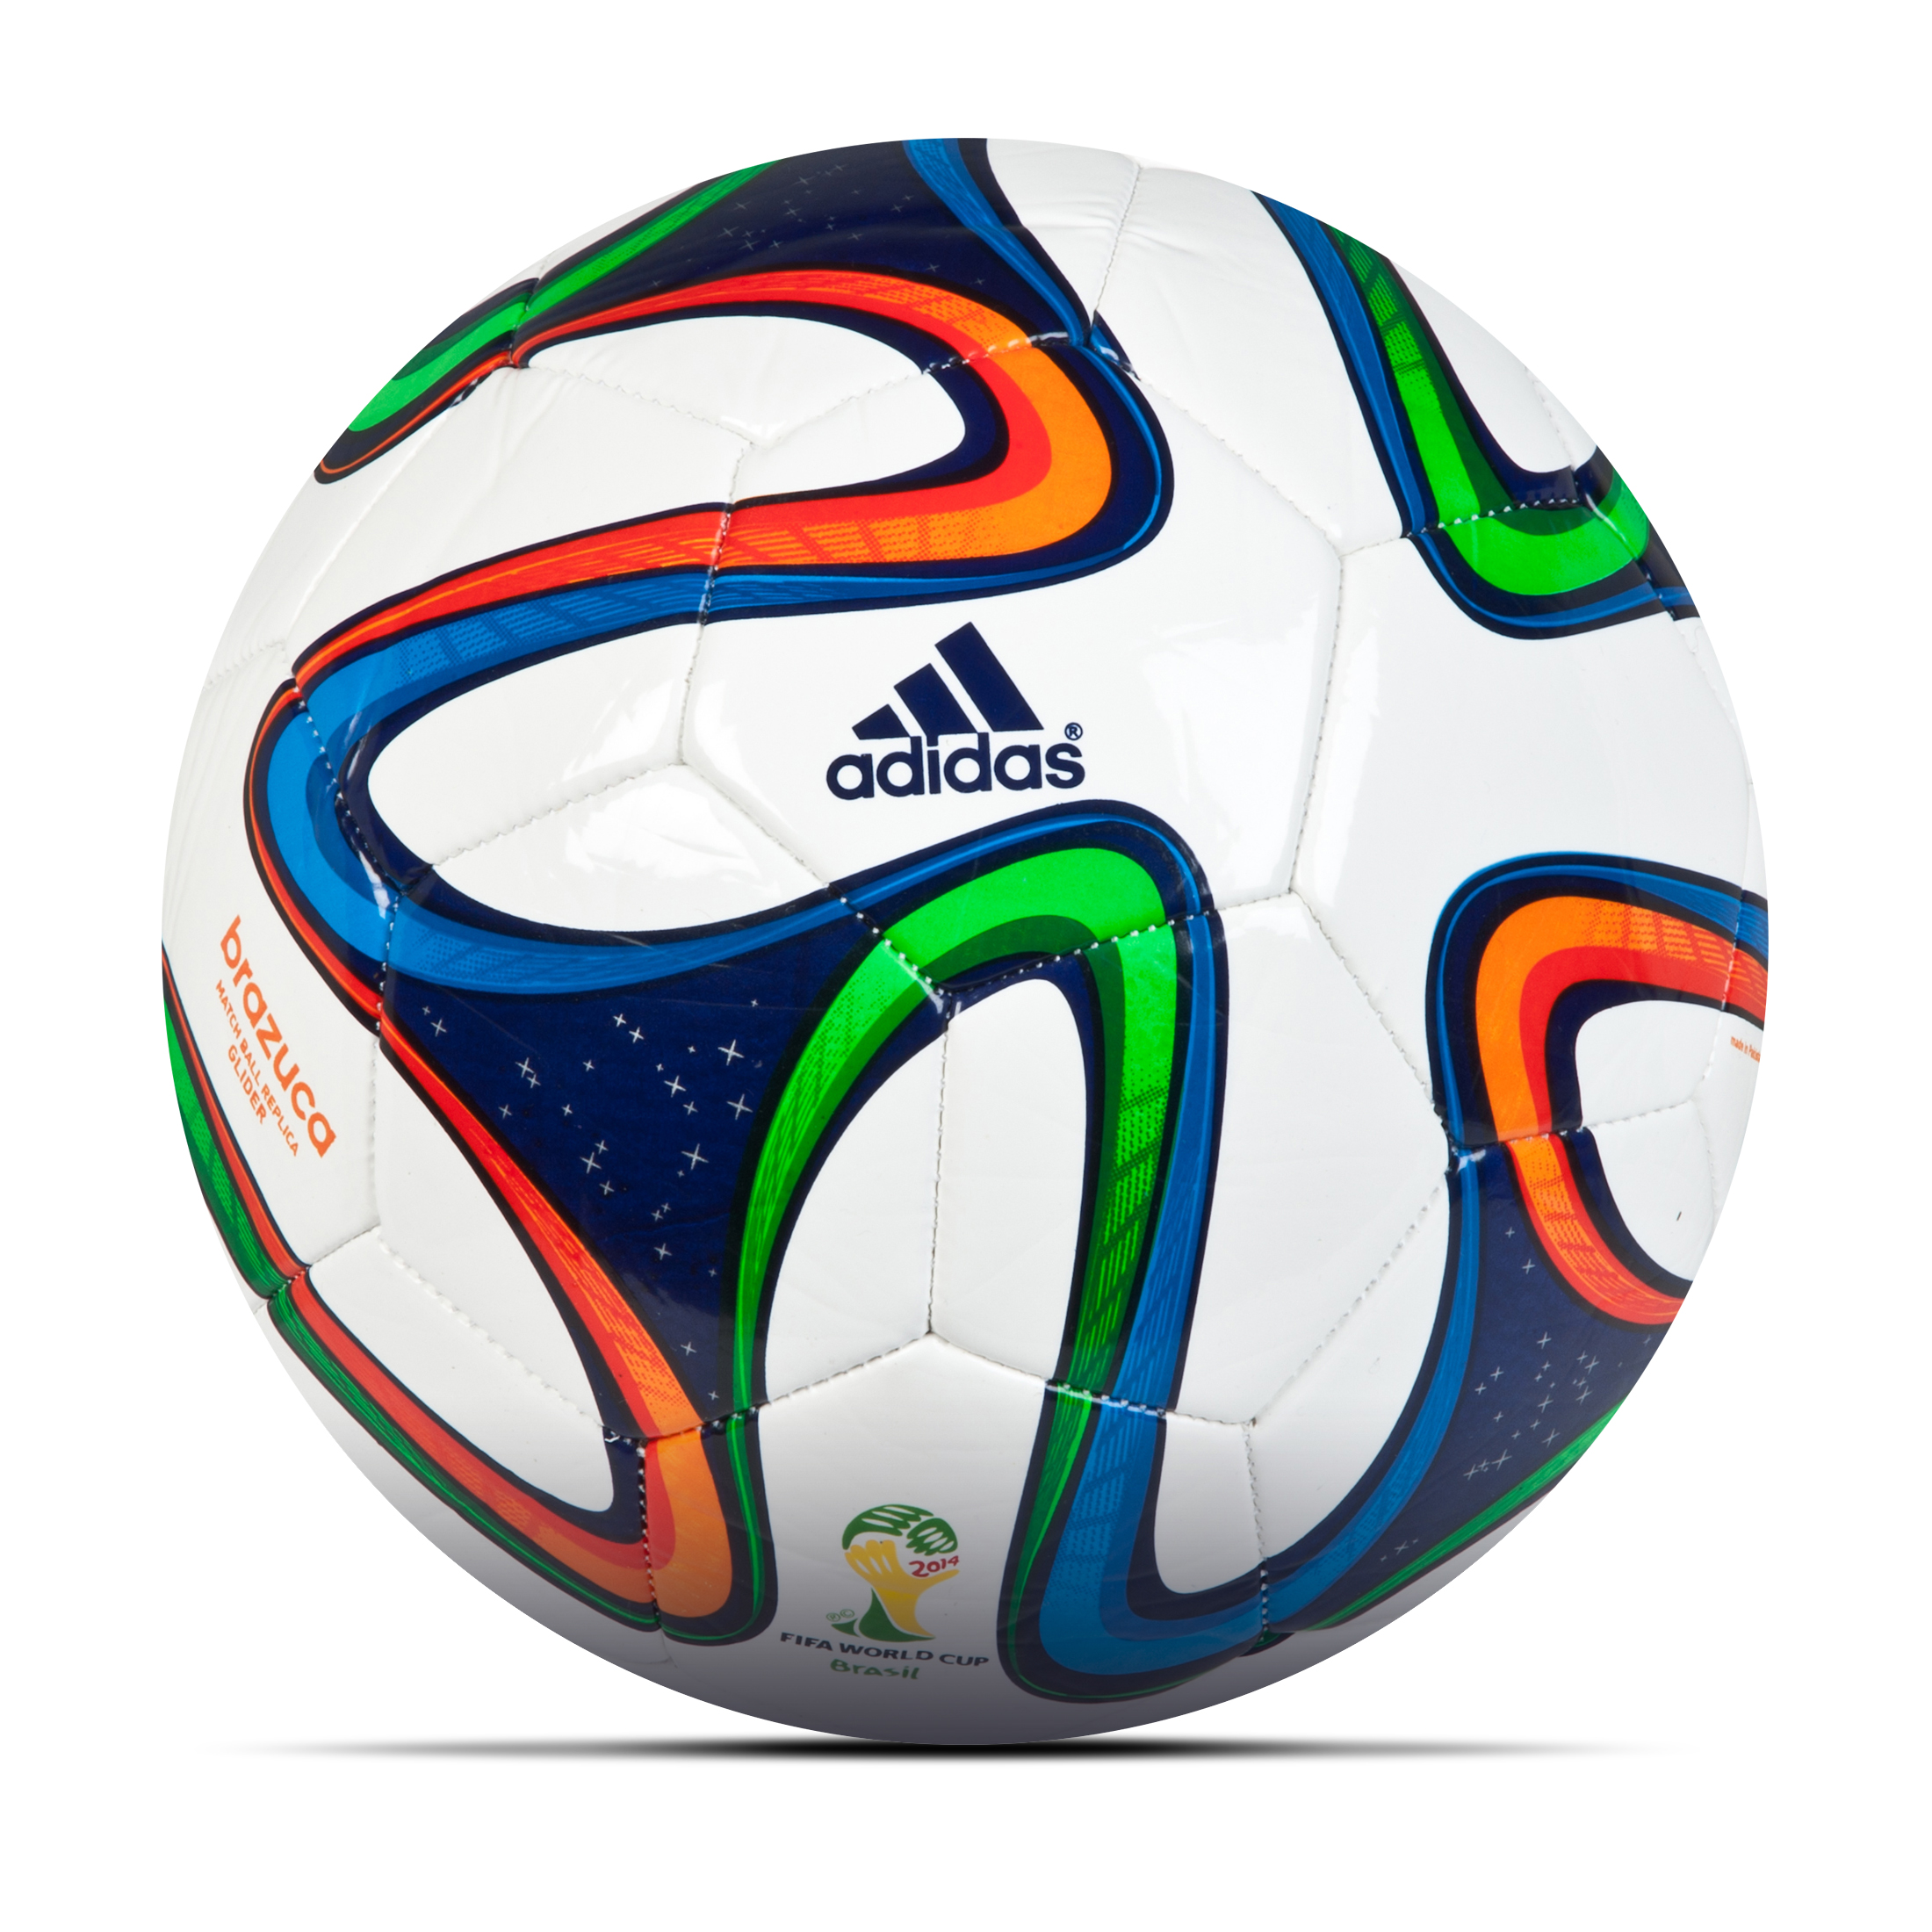 Adidas Brazuca Glider Football - White/Night Blue/Multi White